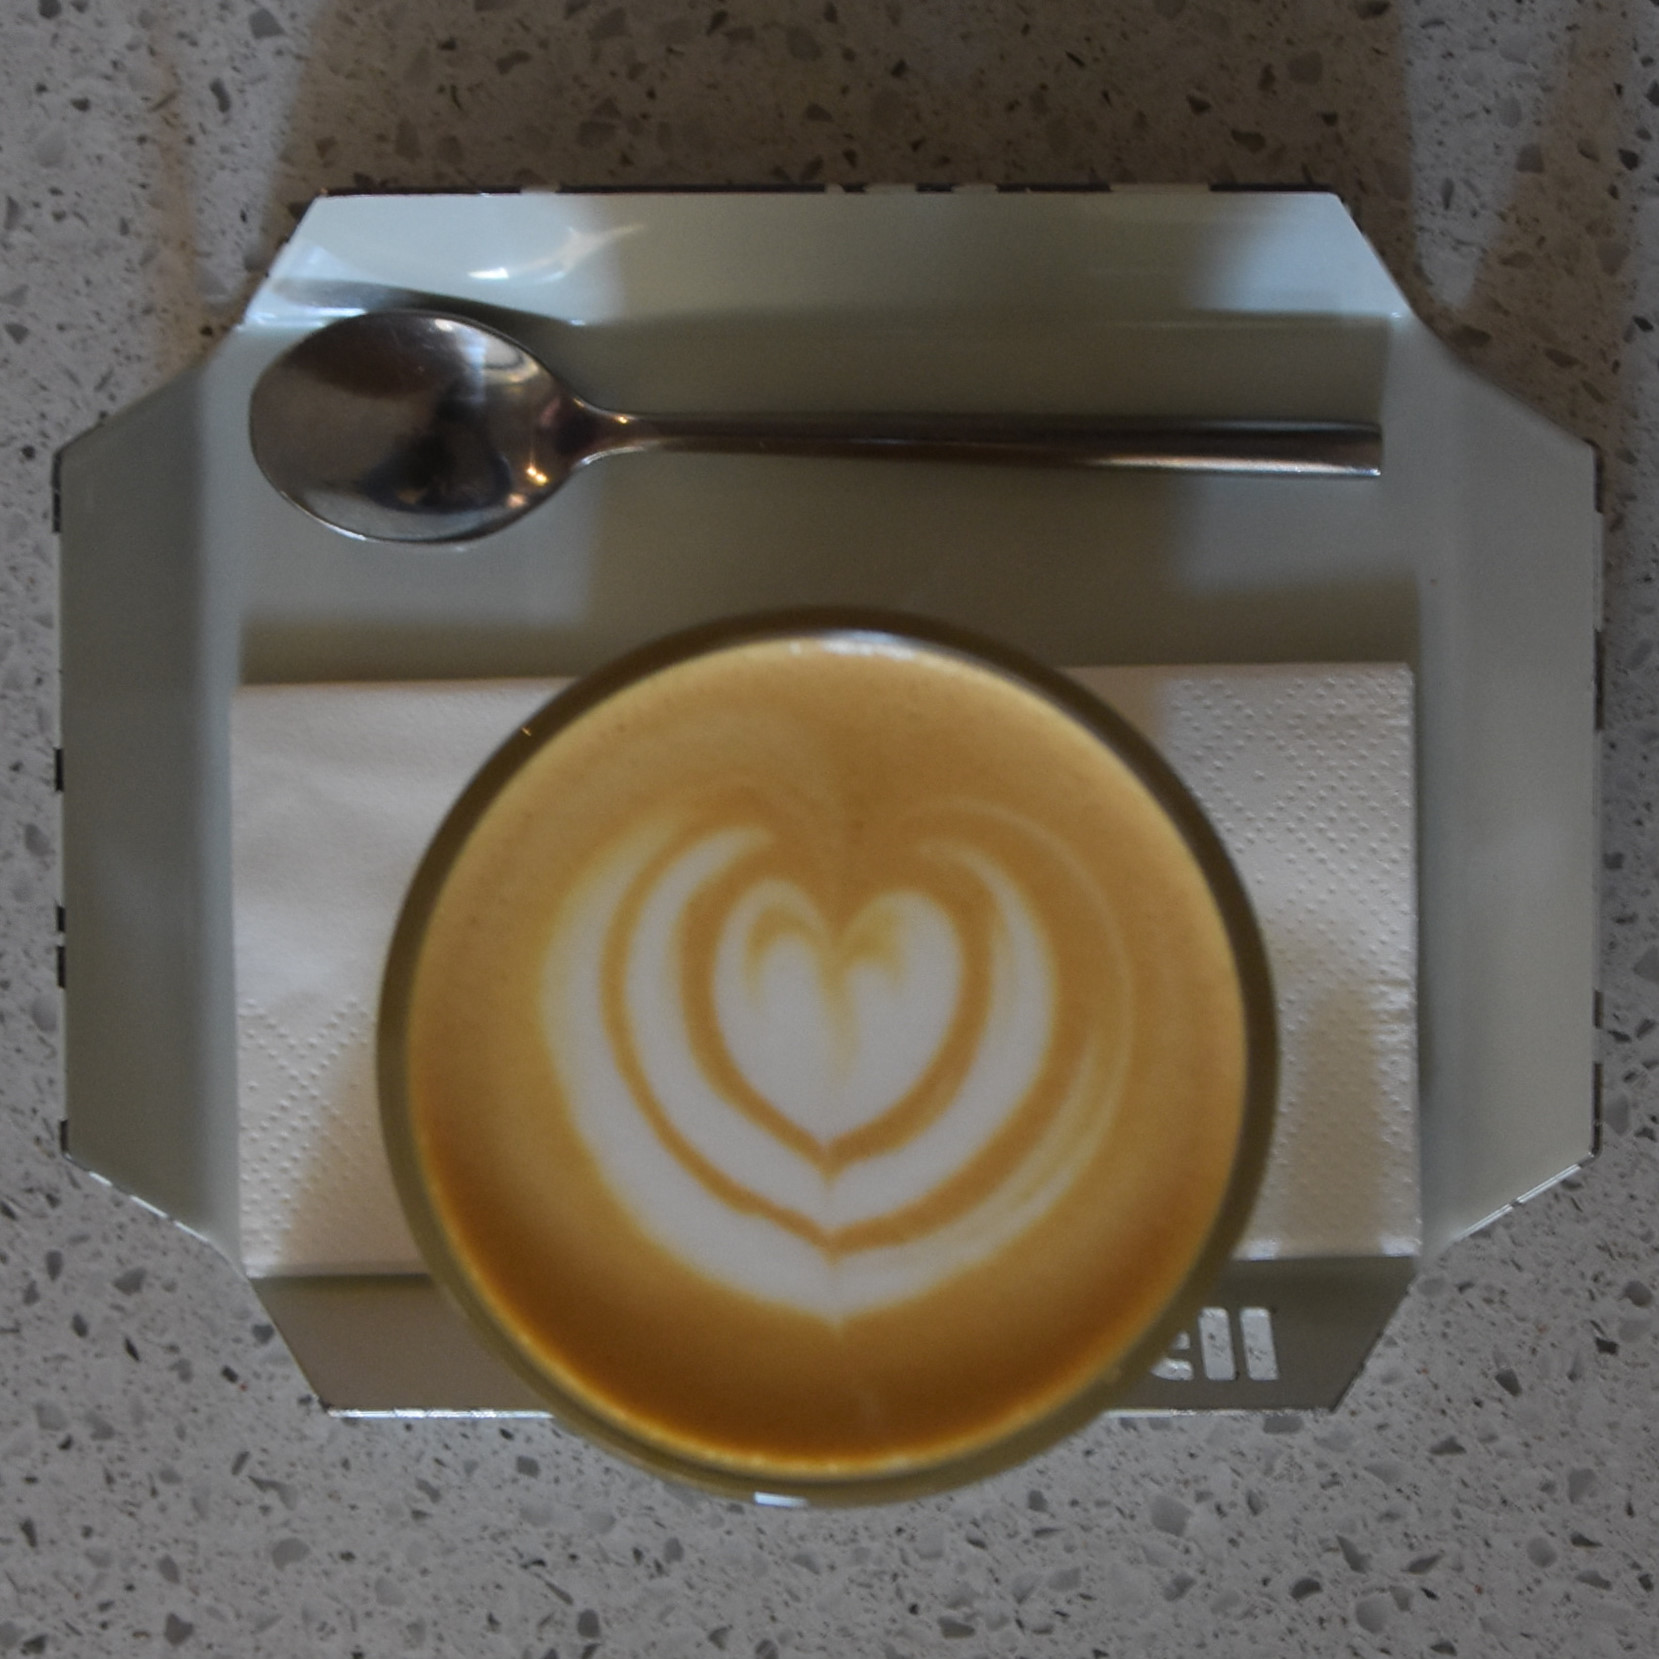 A lovely flat white from Pauseteria, served in a glass on a small, metal tray, and made with an Ethiopian single-origin roasted by Candy Cane.